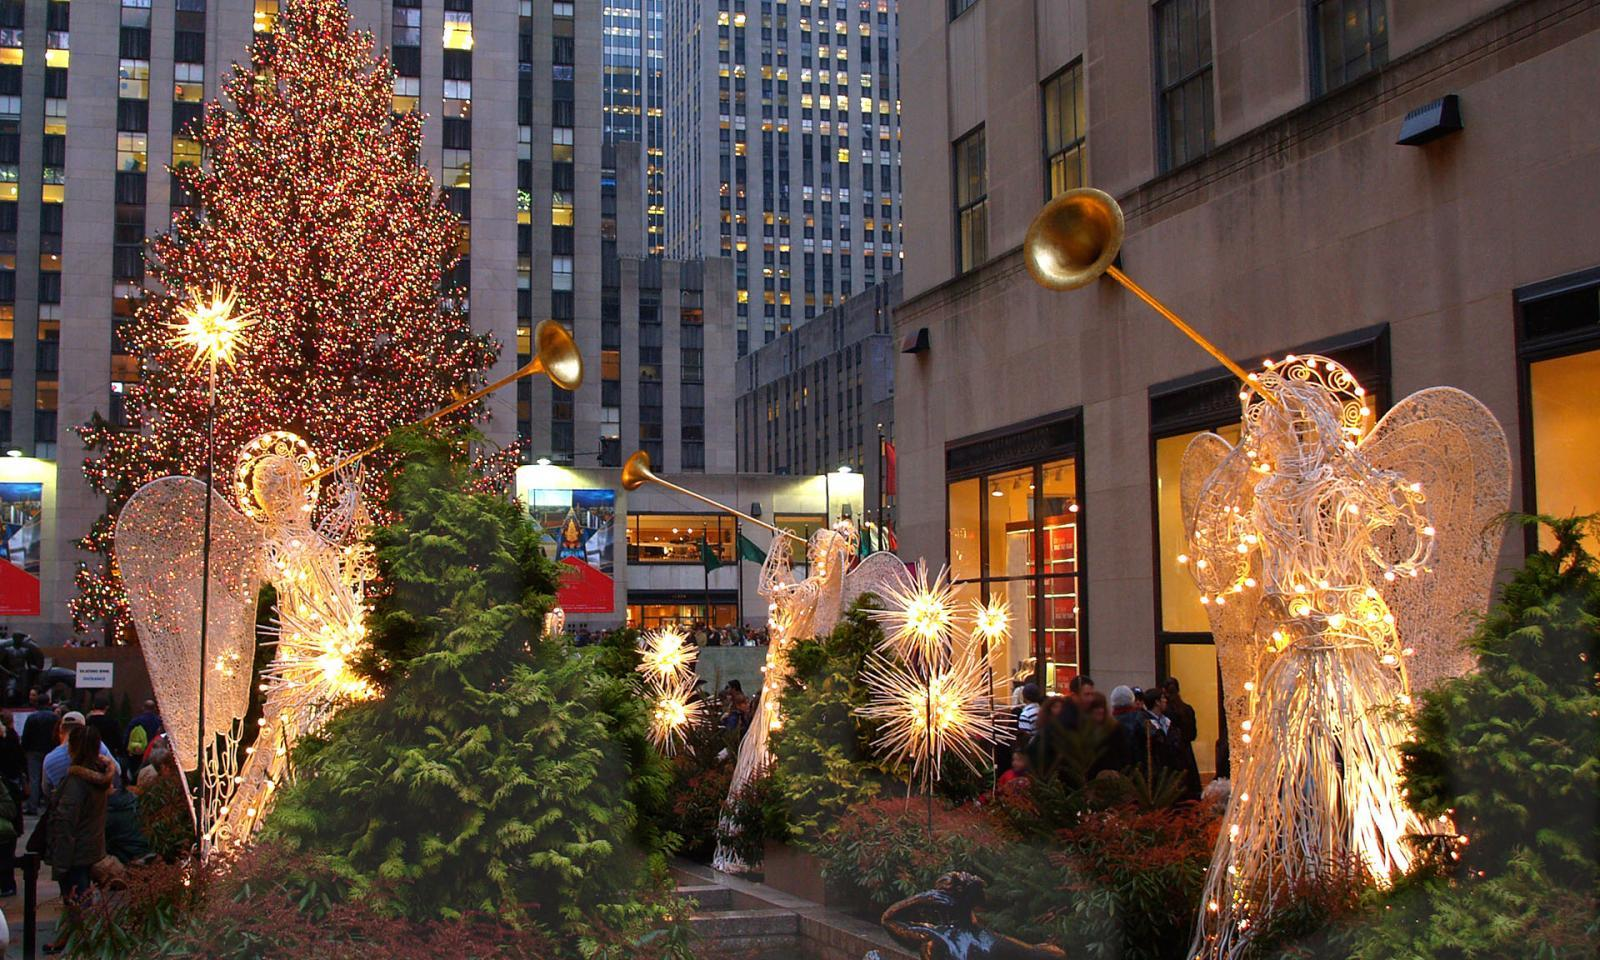 Bennet Natale Things To Do In New York Die Besten Events In 2018 Inkl